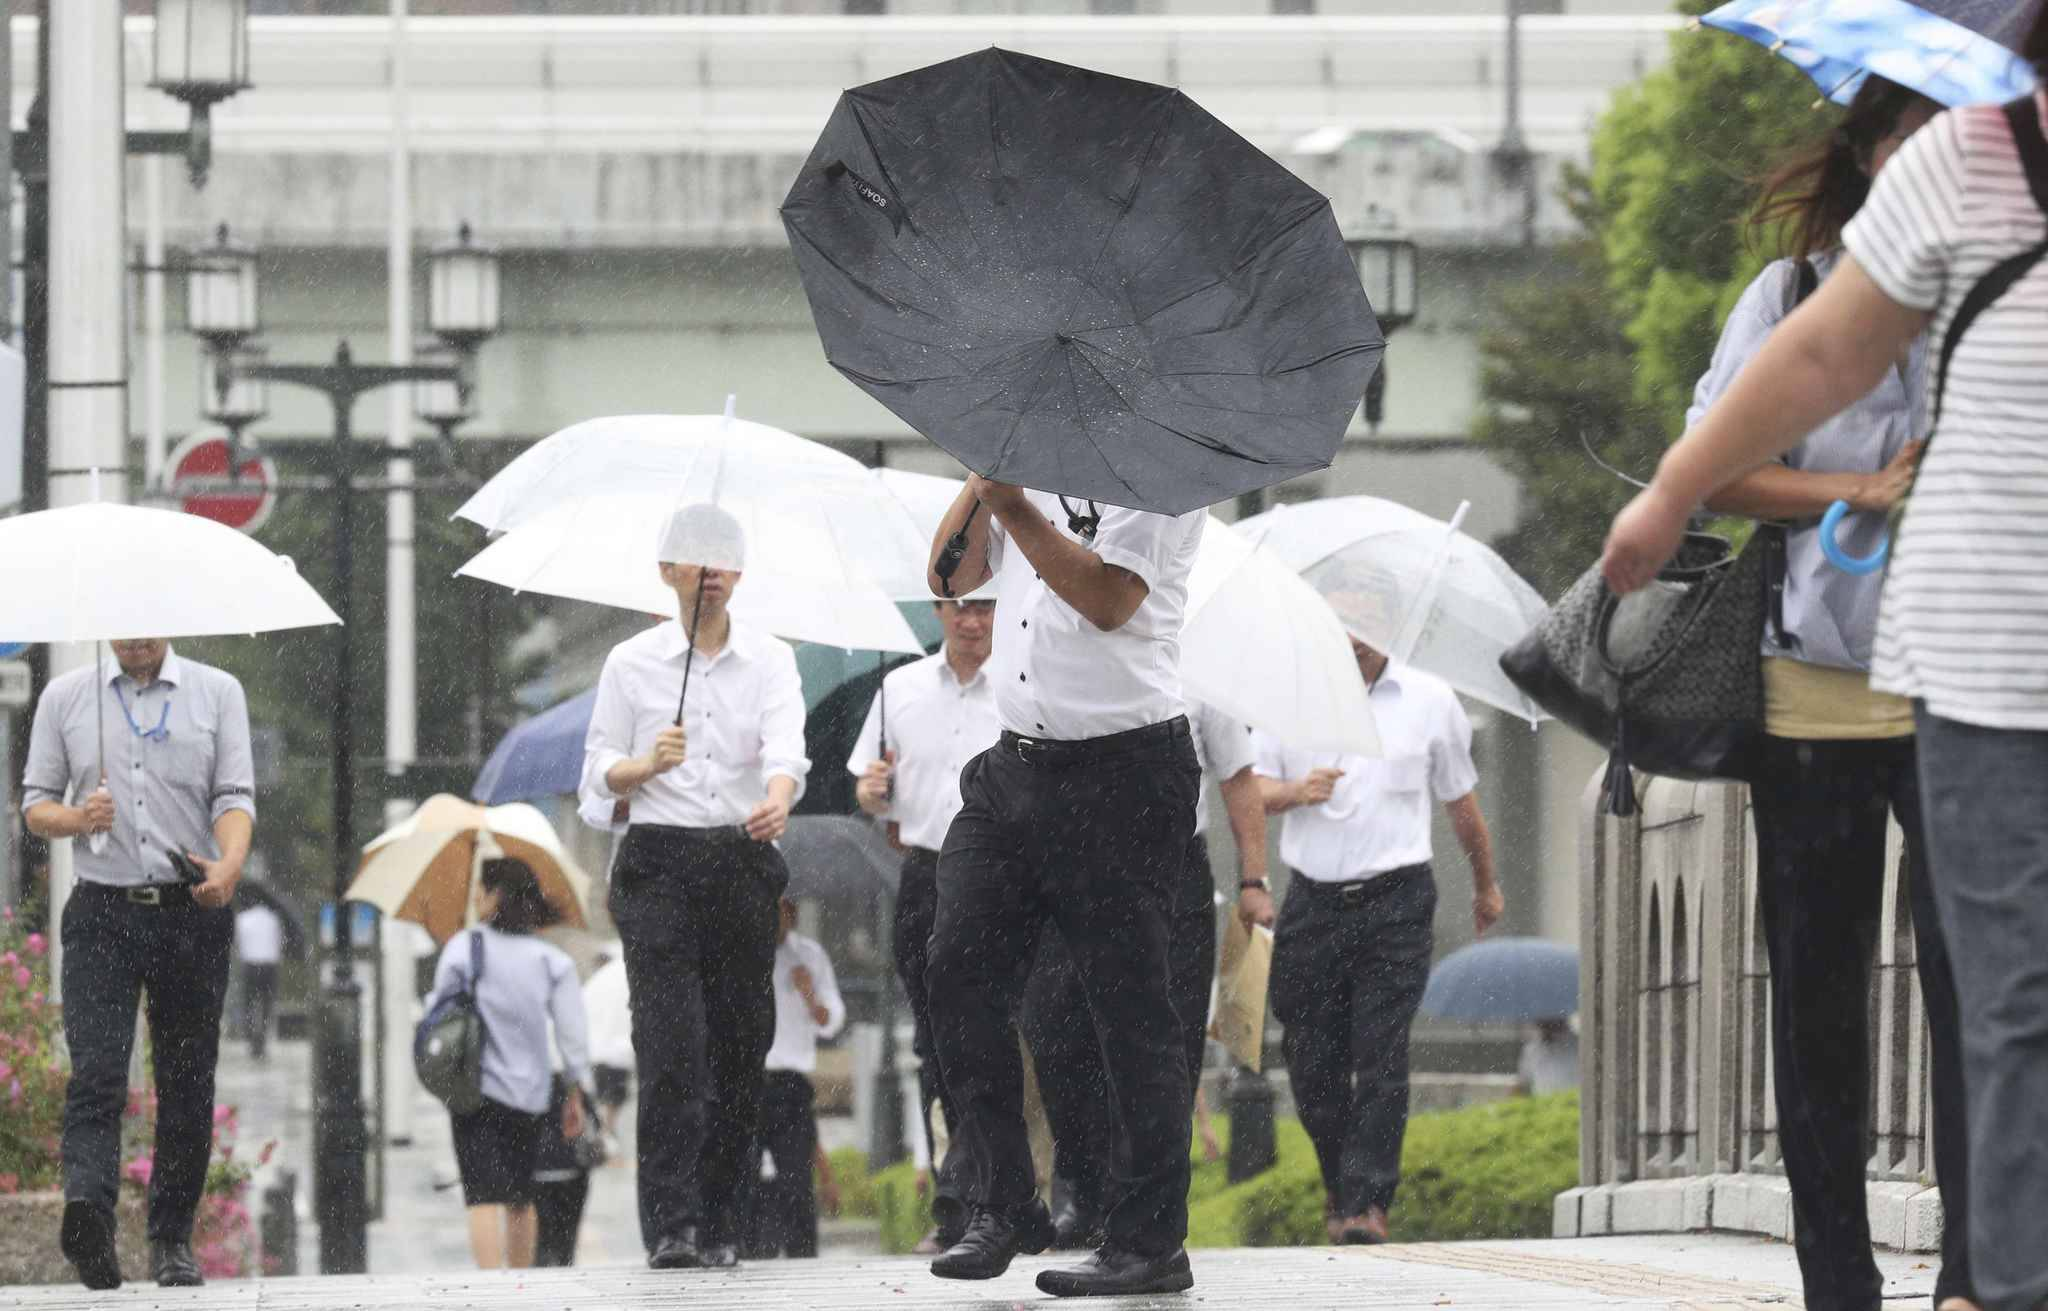 People try to hold umbrellas in strong wind triggered by Jebi in Osaka on Sep.4, 2018. Powerful typhoon made a landfall on Tokushima Prefecture in noon and expected to proceed to the Sea of Japan. Violent winds, high waves and heavy rains are forecasted in wide area of Japan till next day.